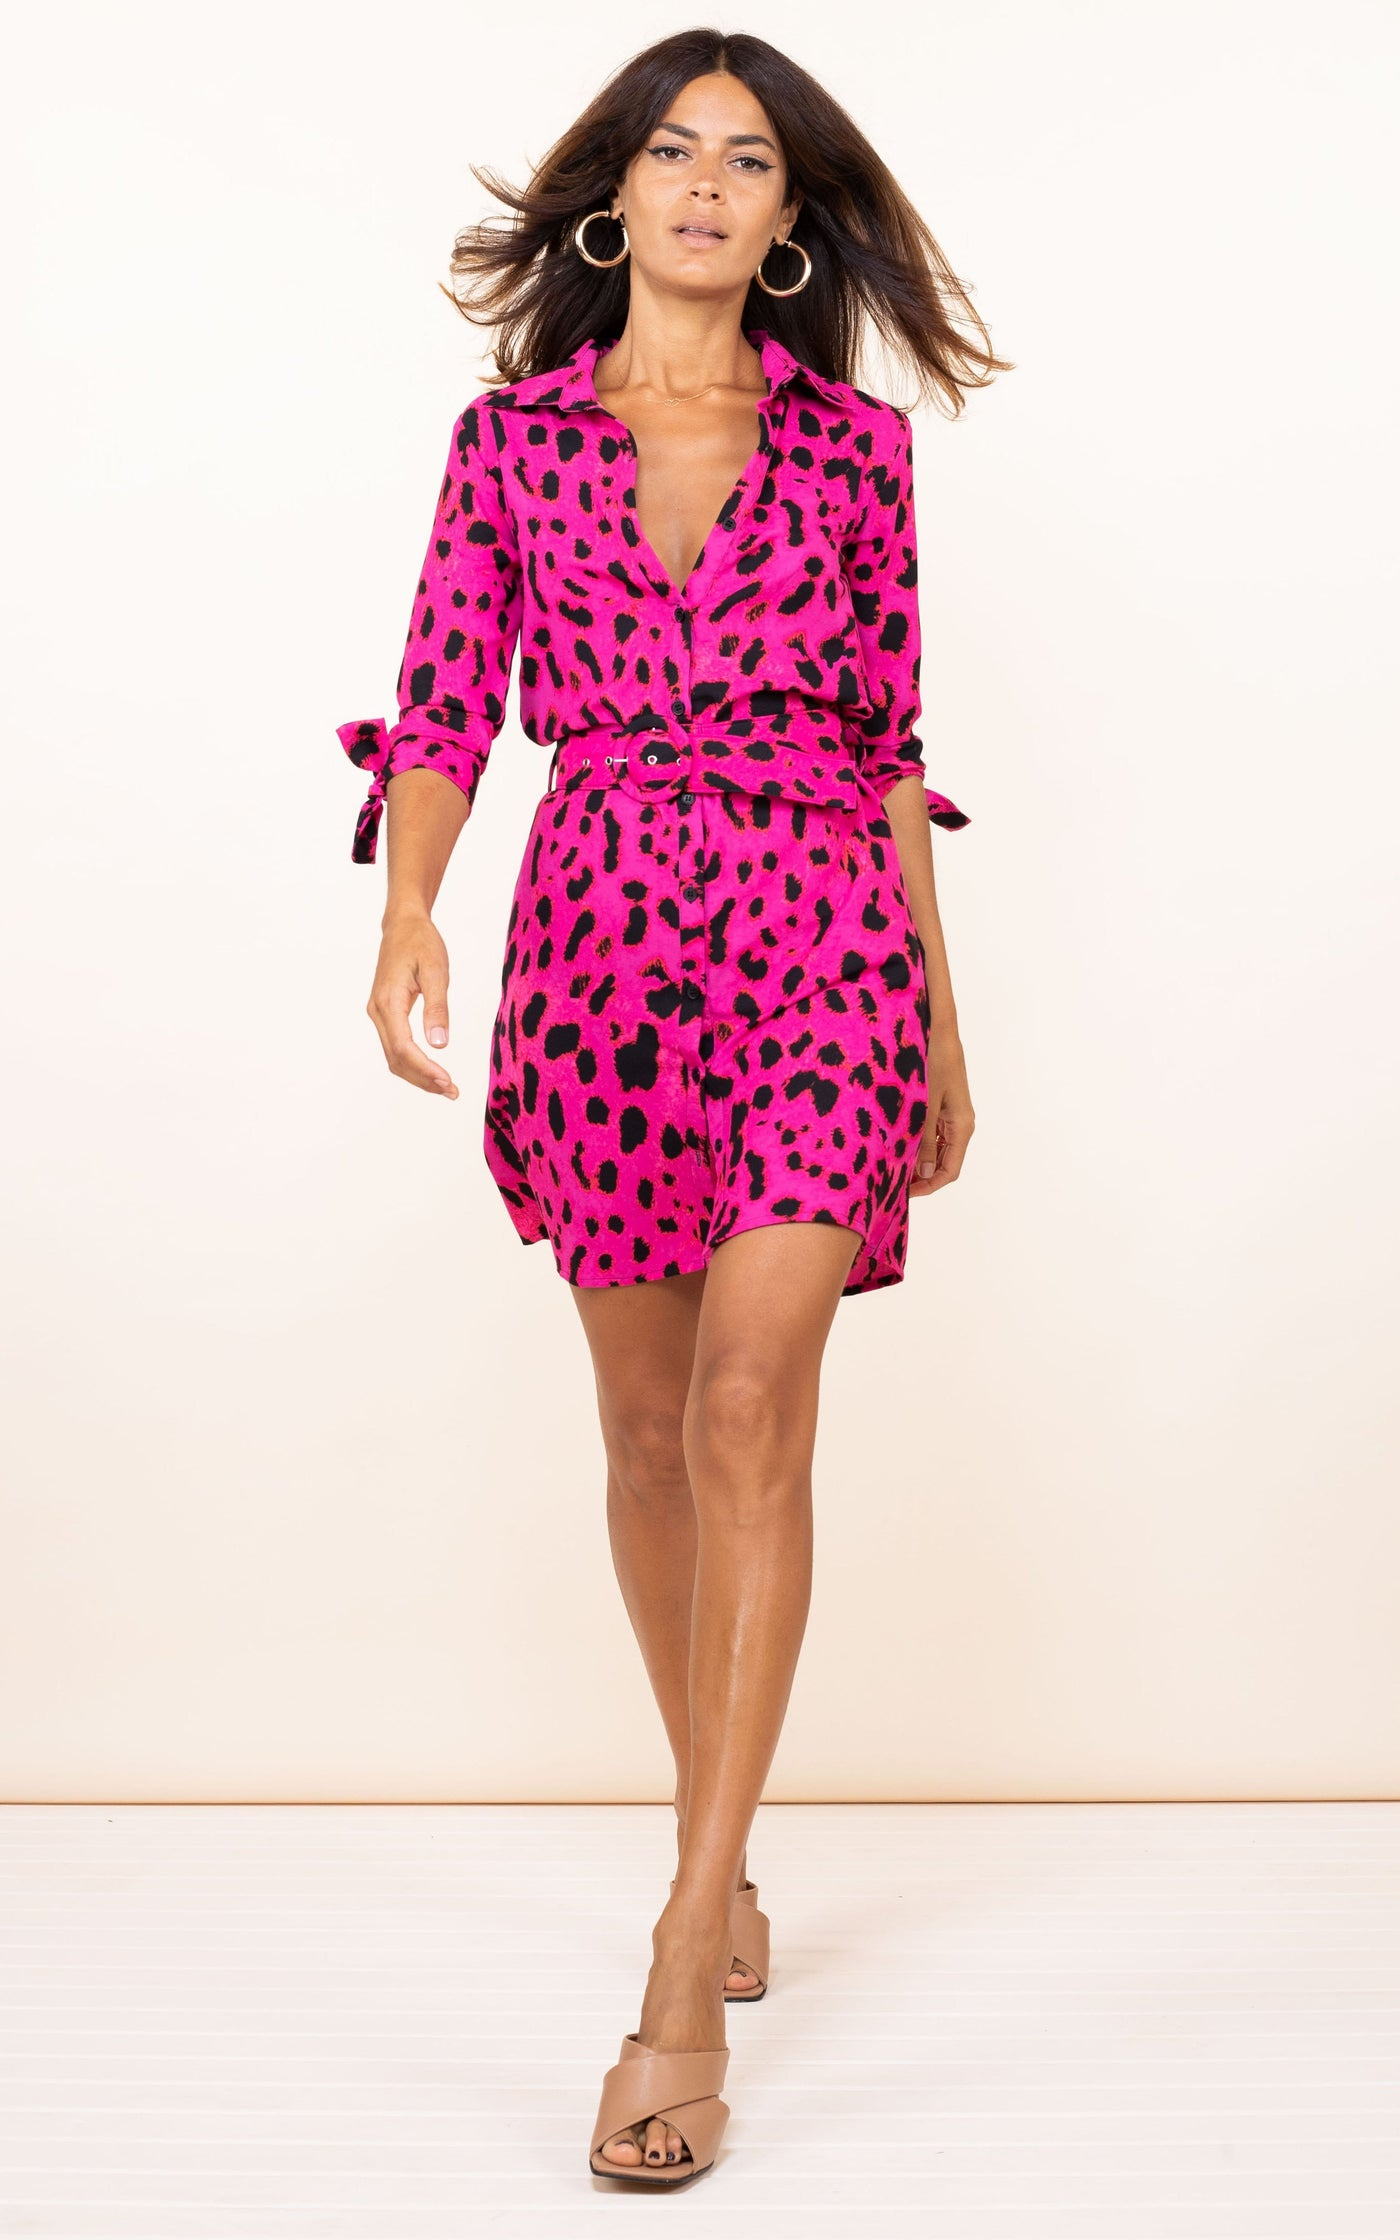 Dancing Leopard model walks forward wearing Jonah Mini Shirt Dress in pink leopard print with heels